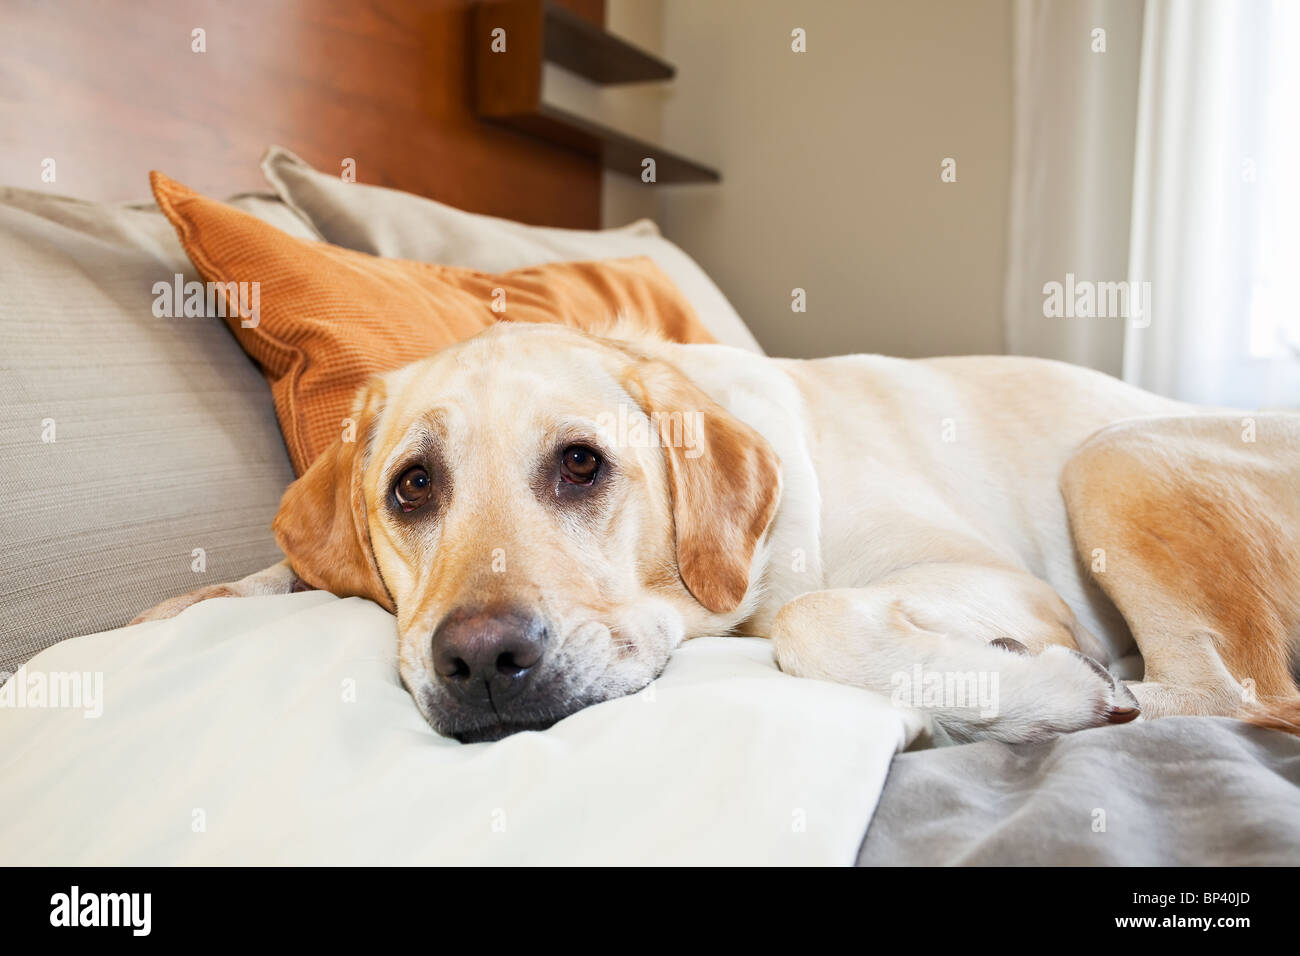 Yellow Labrador Retriever relaxing in bed in a pet friendly hotel. - Stock Image